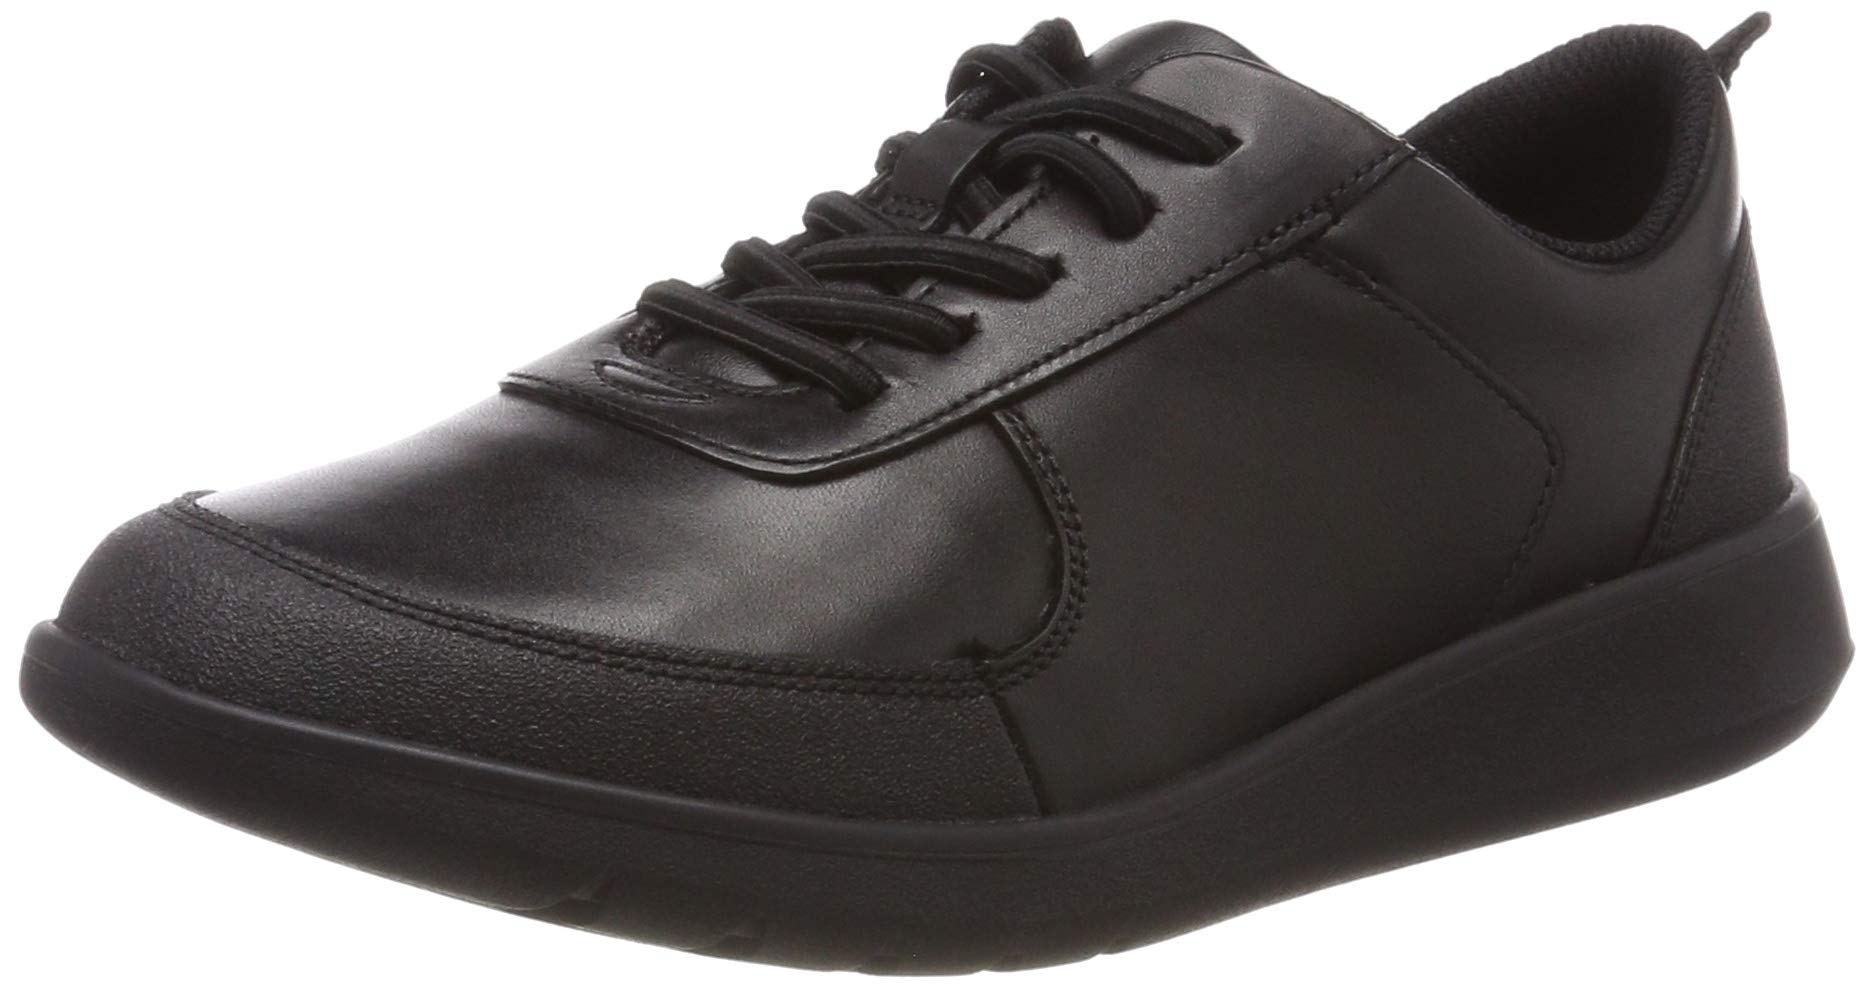 CLARKS Boys' Scape Street K Brogues, (Black Leather-), 12.5 UK